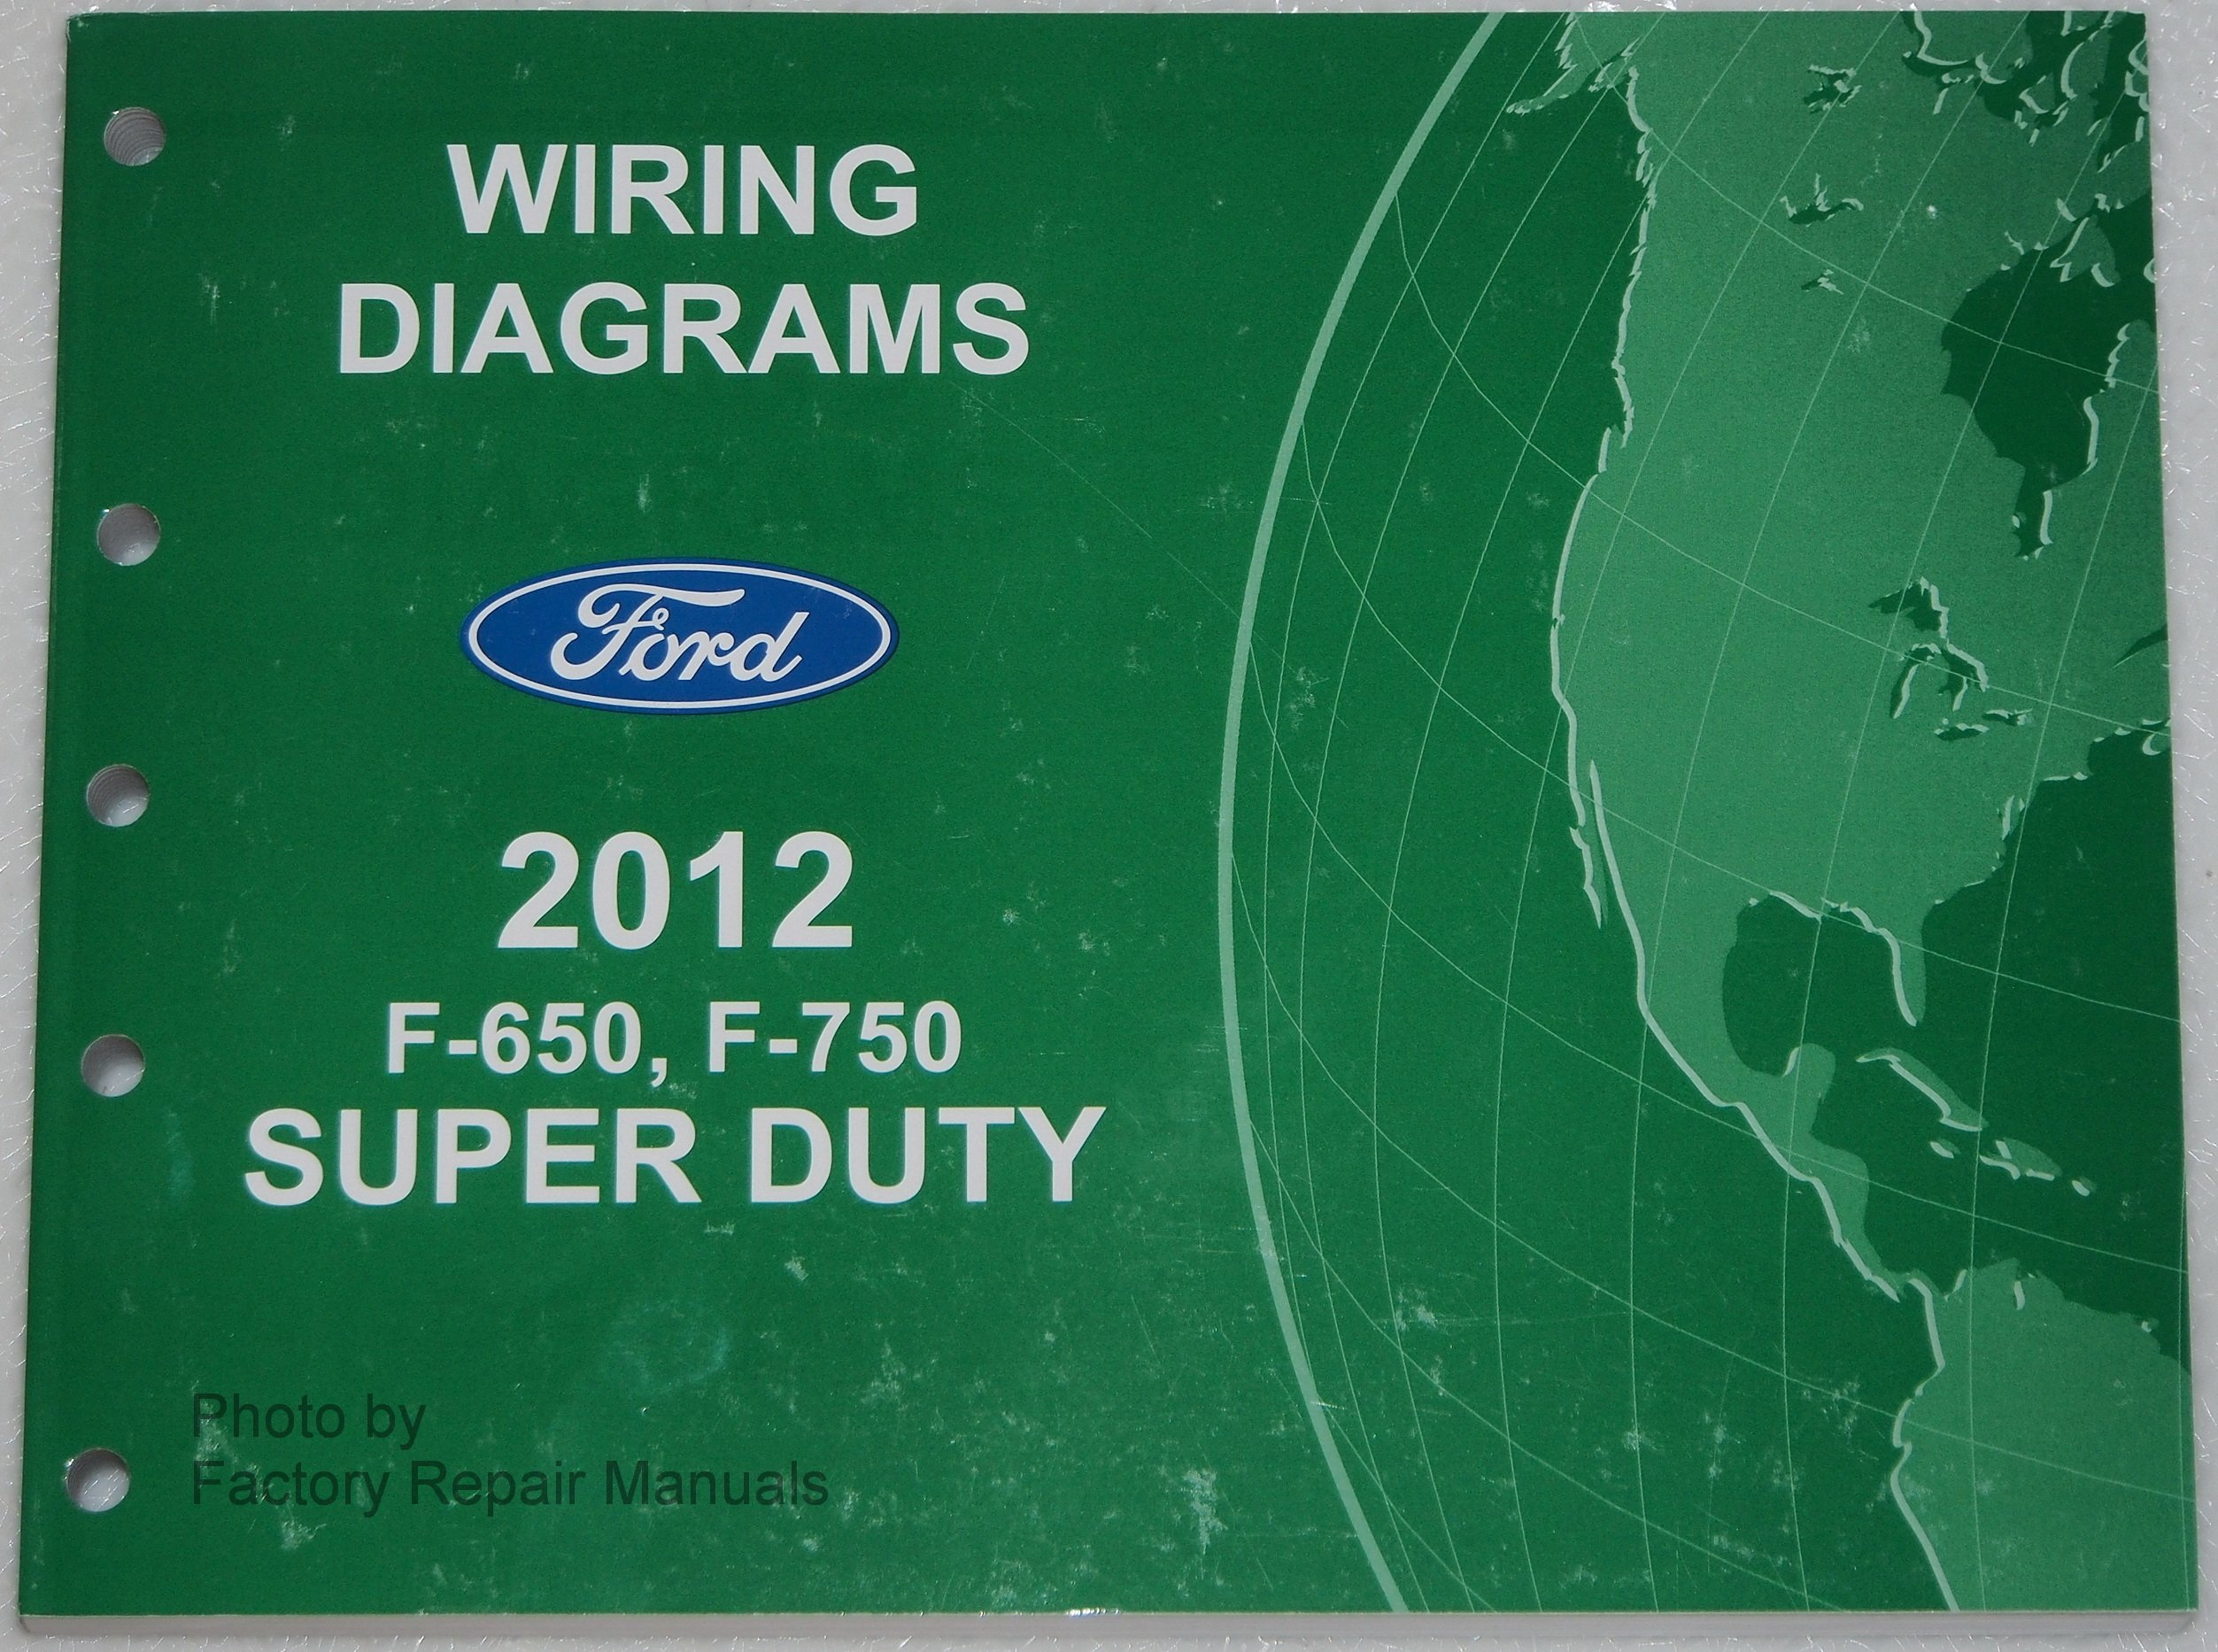 91KkFIScY%2BL 2012 f650 f750 wiring diagram ford motor company amazon com books 2013 ford wiring diagram at sewacar.co